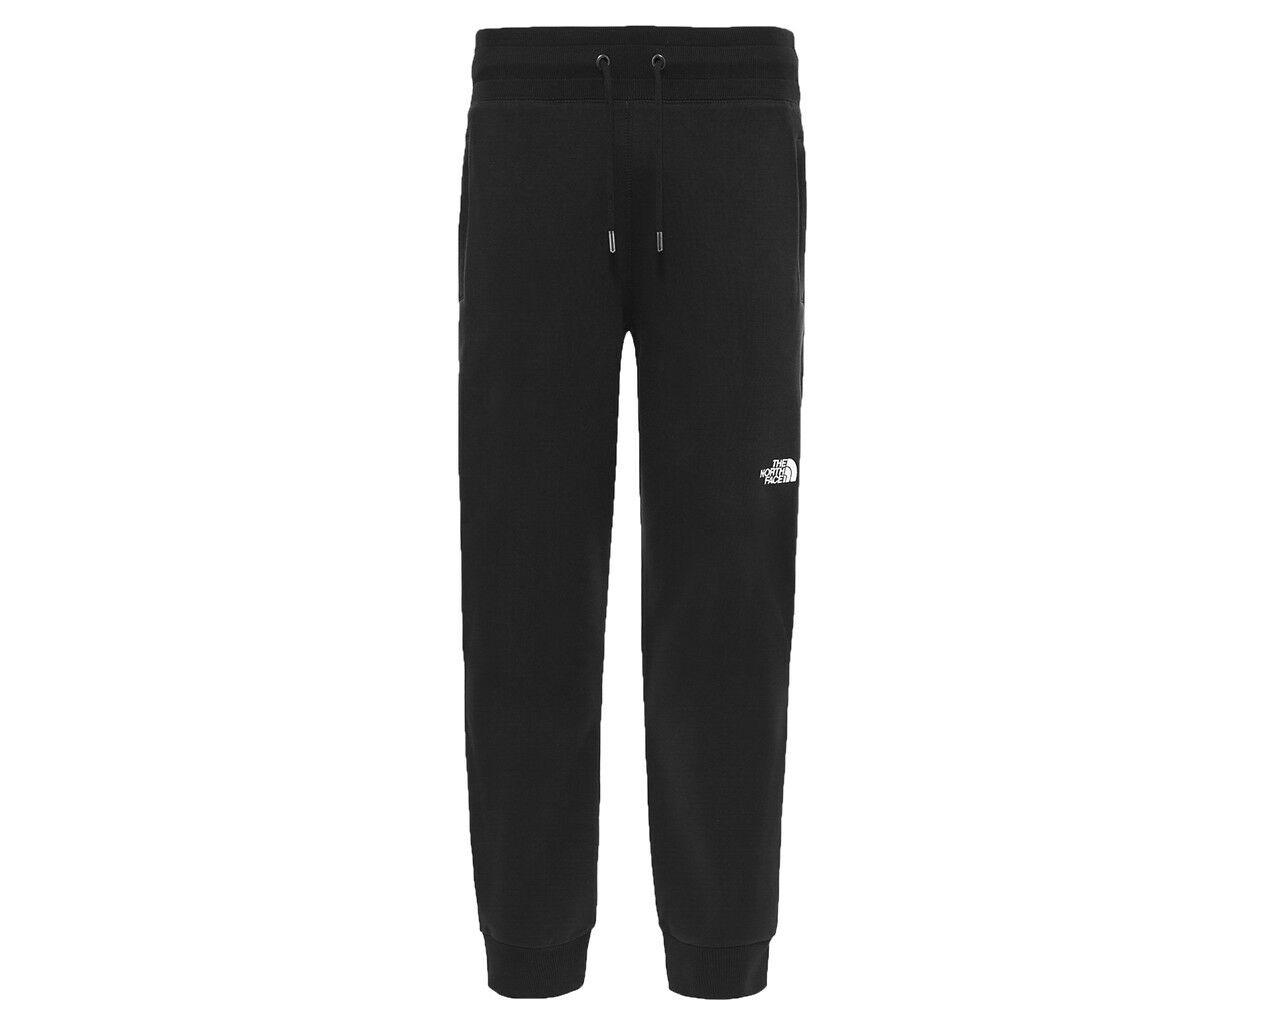 The North Face T0CG25KY4 Pantaloni da Jogging Nero da Uomo Pantaloni Tuta